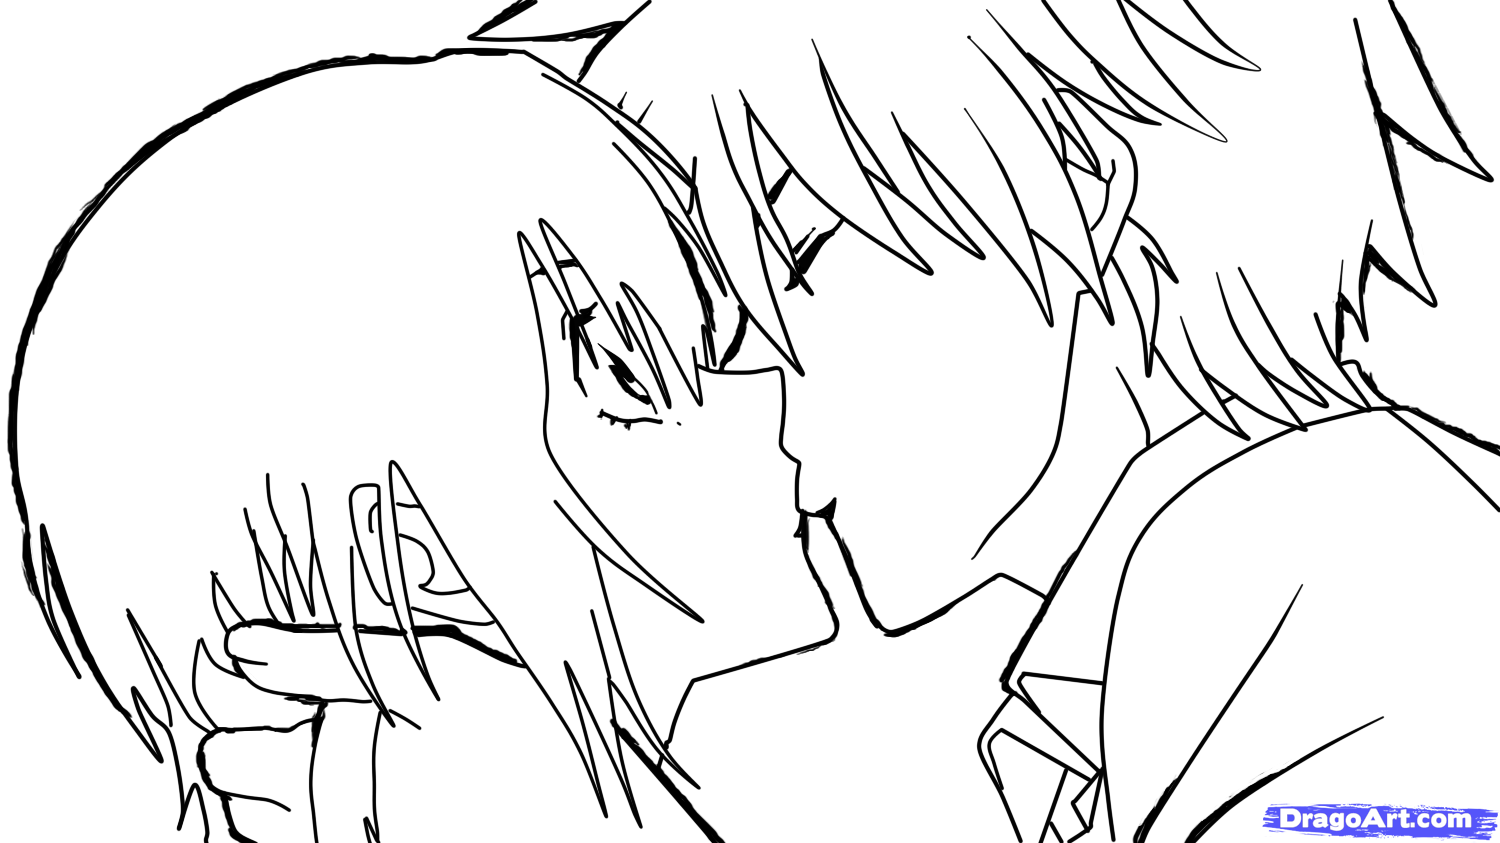 Coloring pages kiss - How To Sketch An Anime Kiss Step By Step Anime People Anime